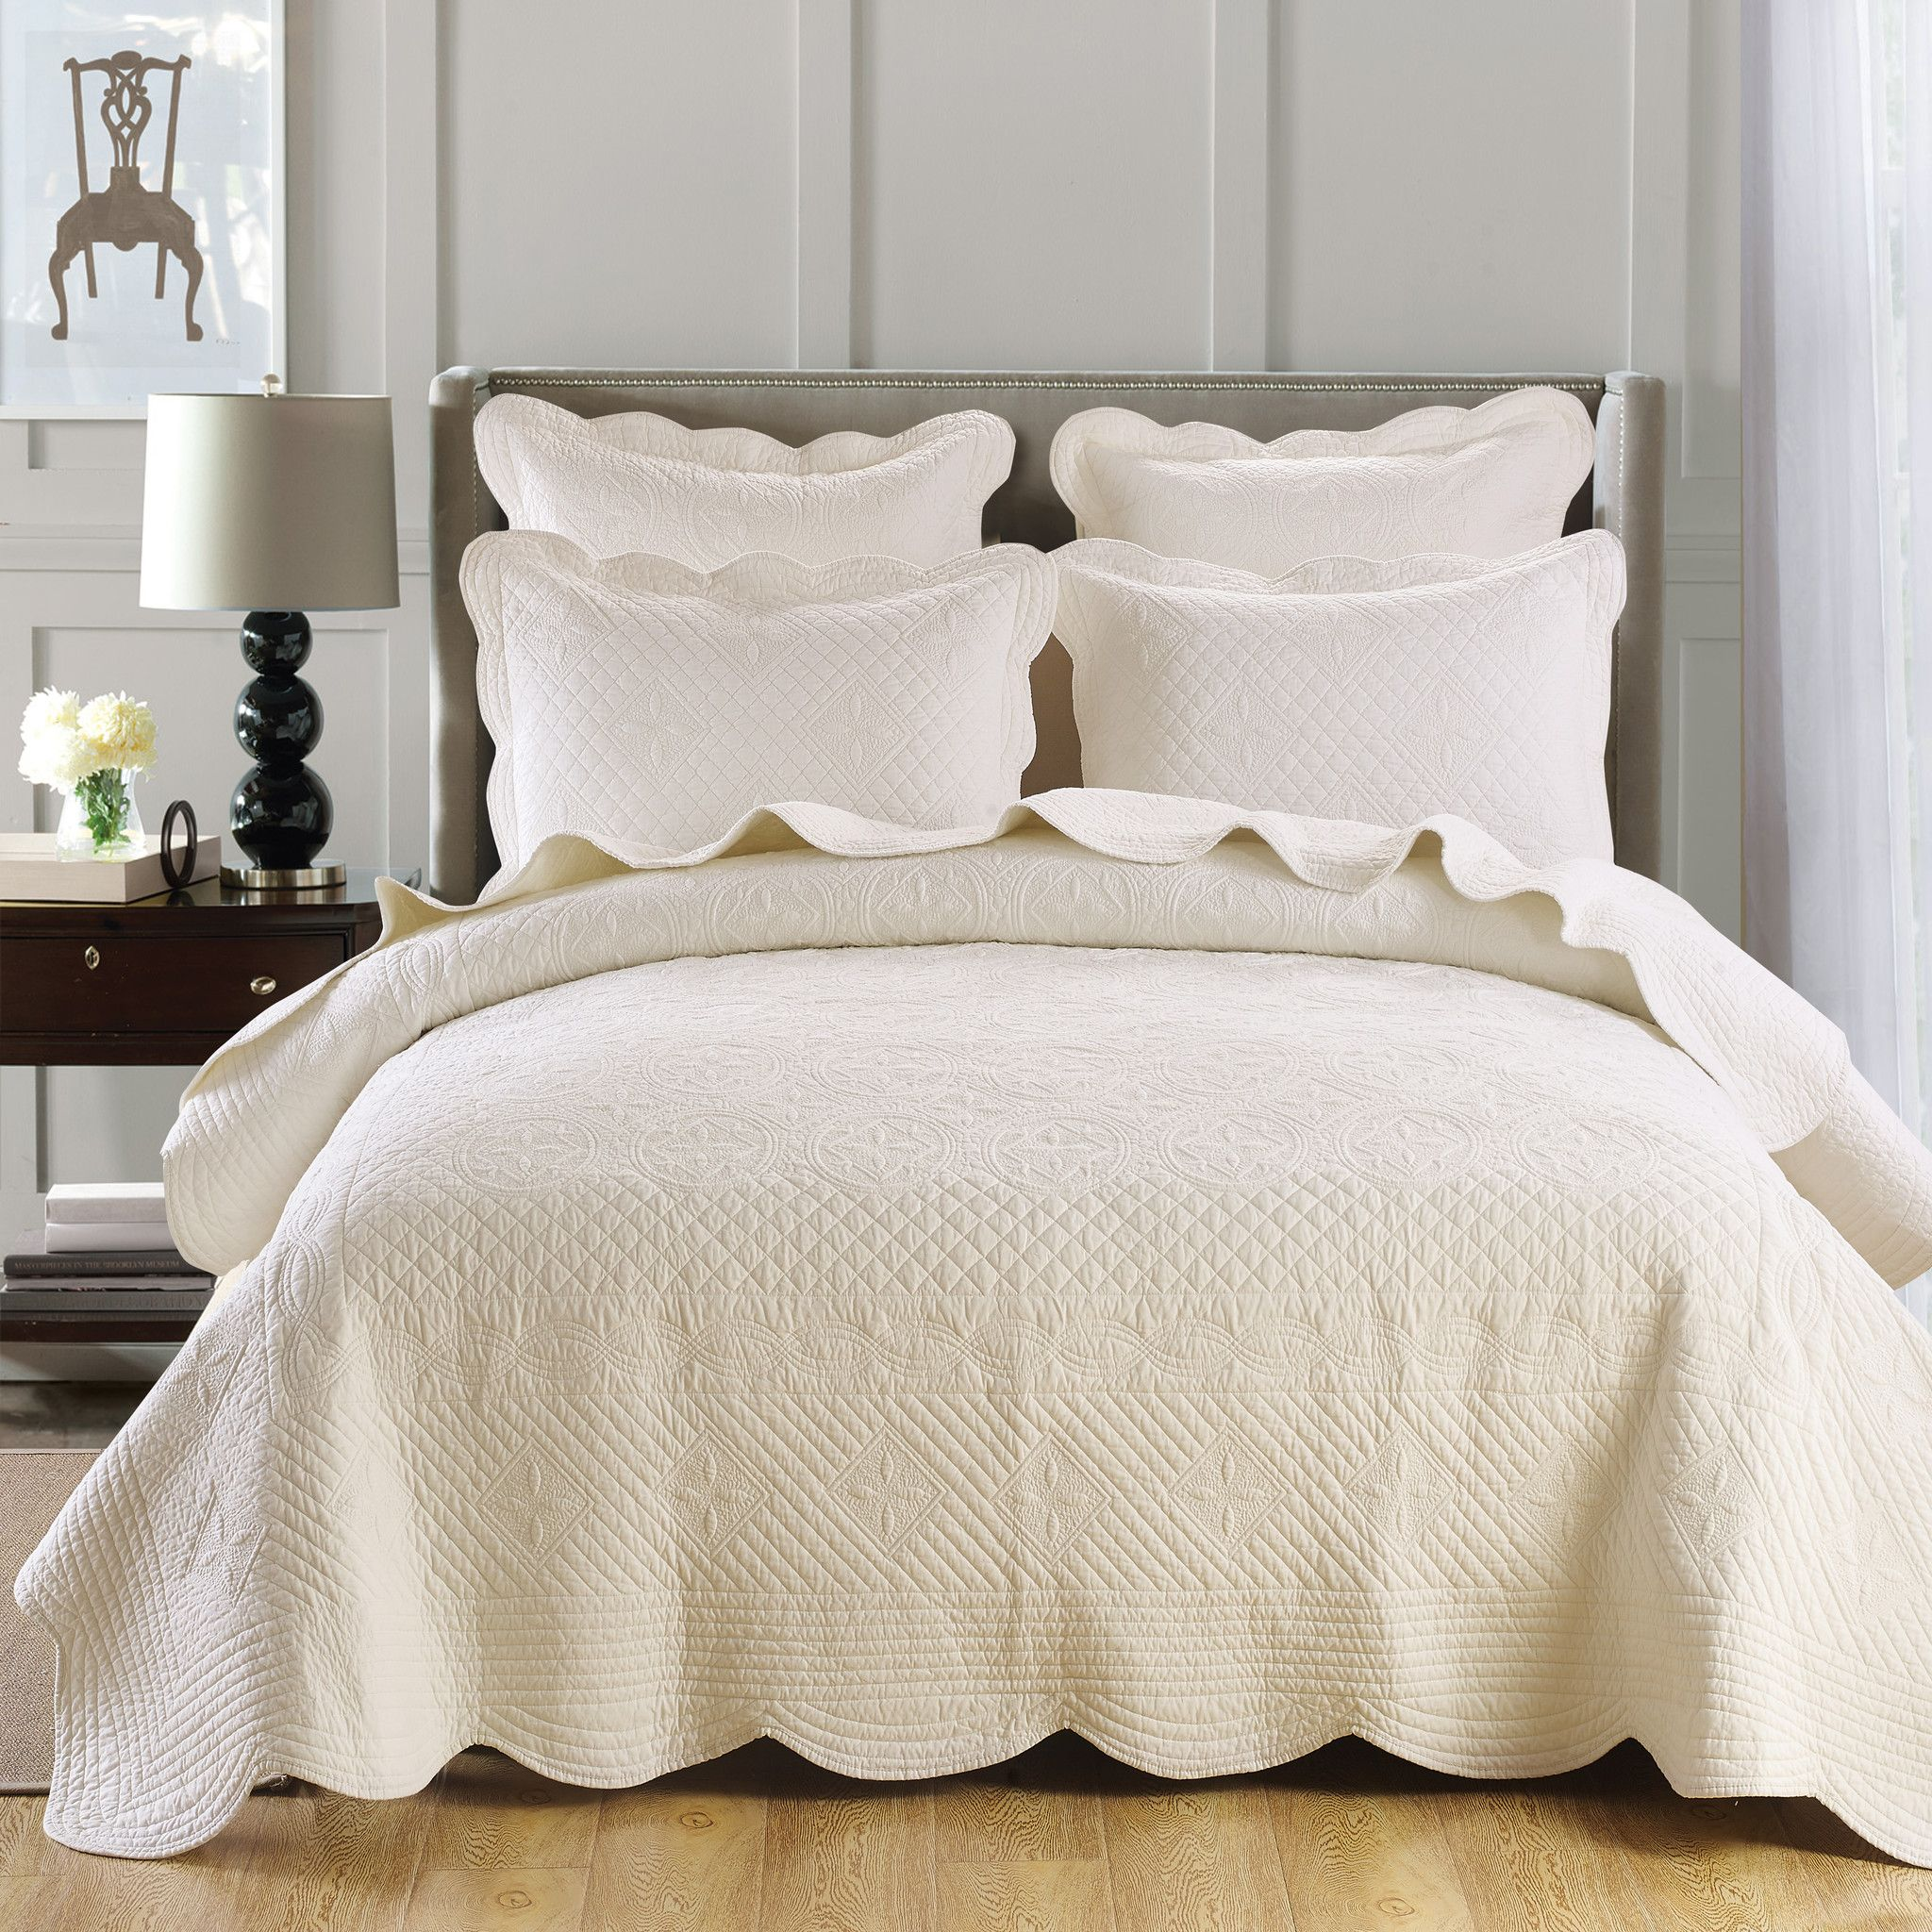 ivory quilt - Google Search | Quilts, Bedspreads & Comforters ... : ivory quilts - Adamdwight.com